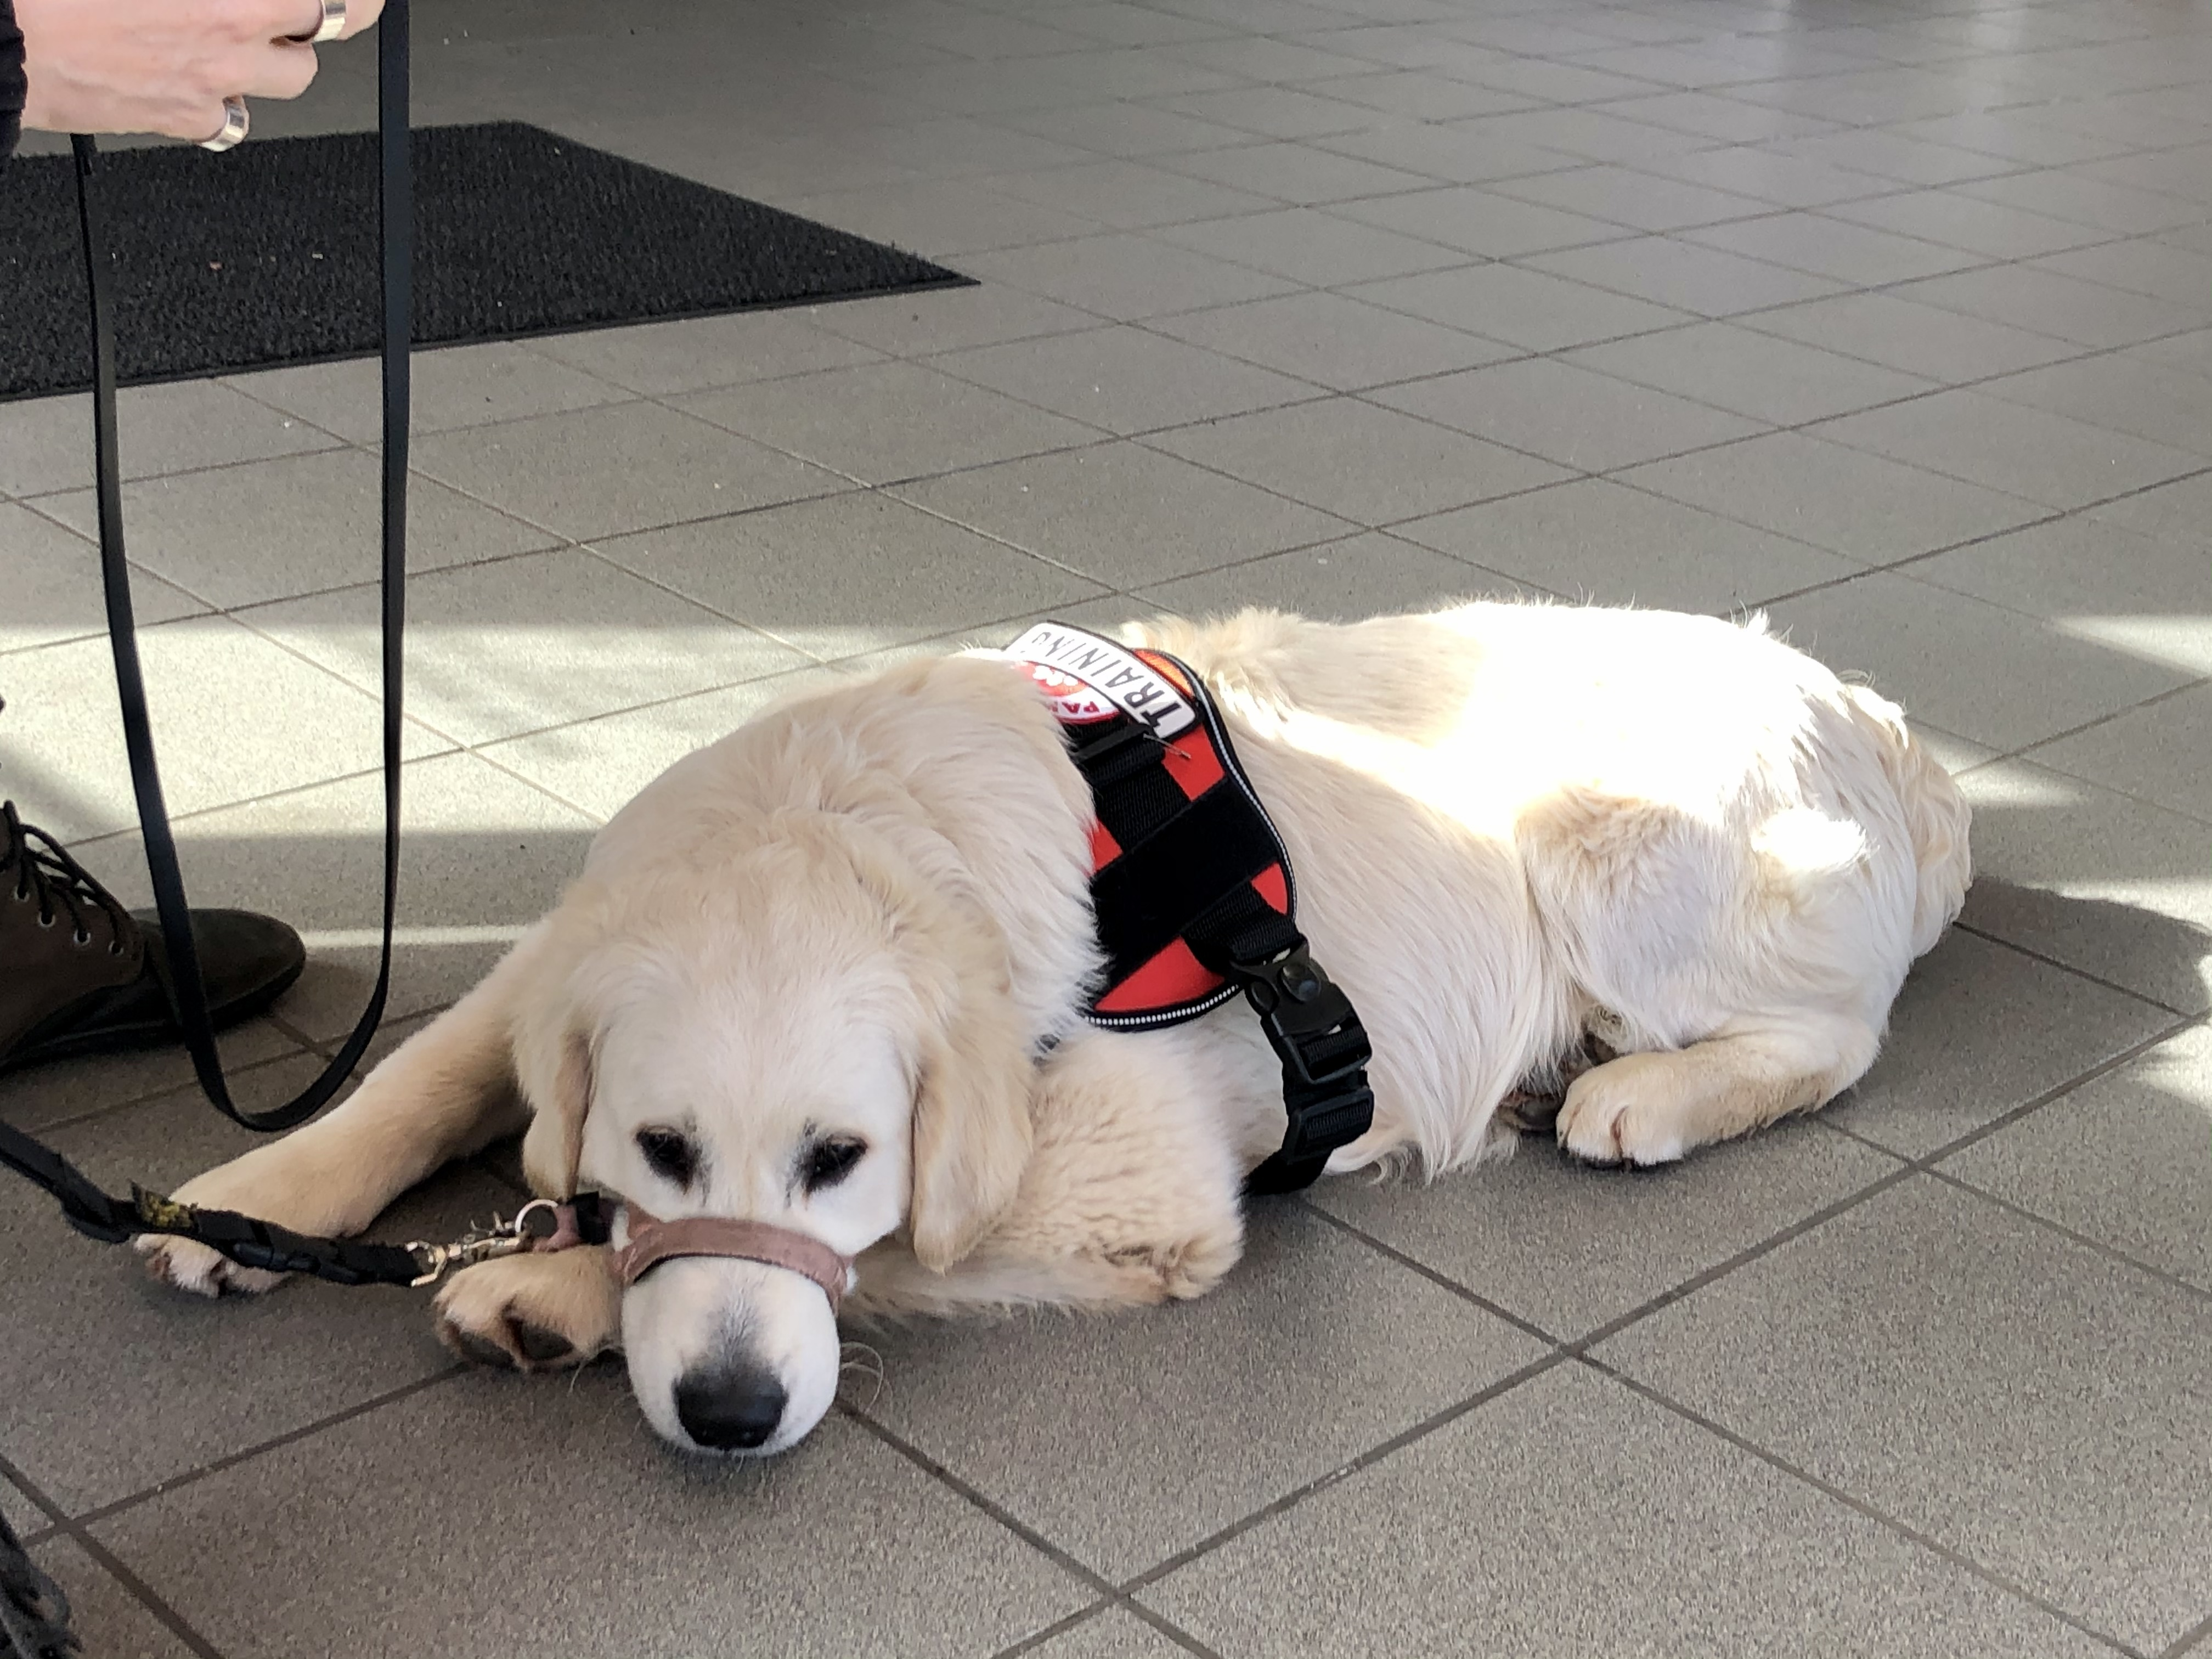 Service dog in training practicing patience during public access